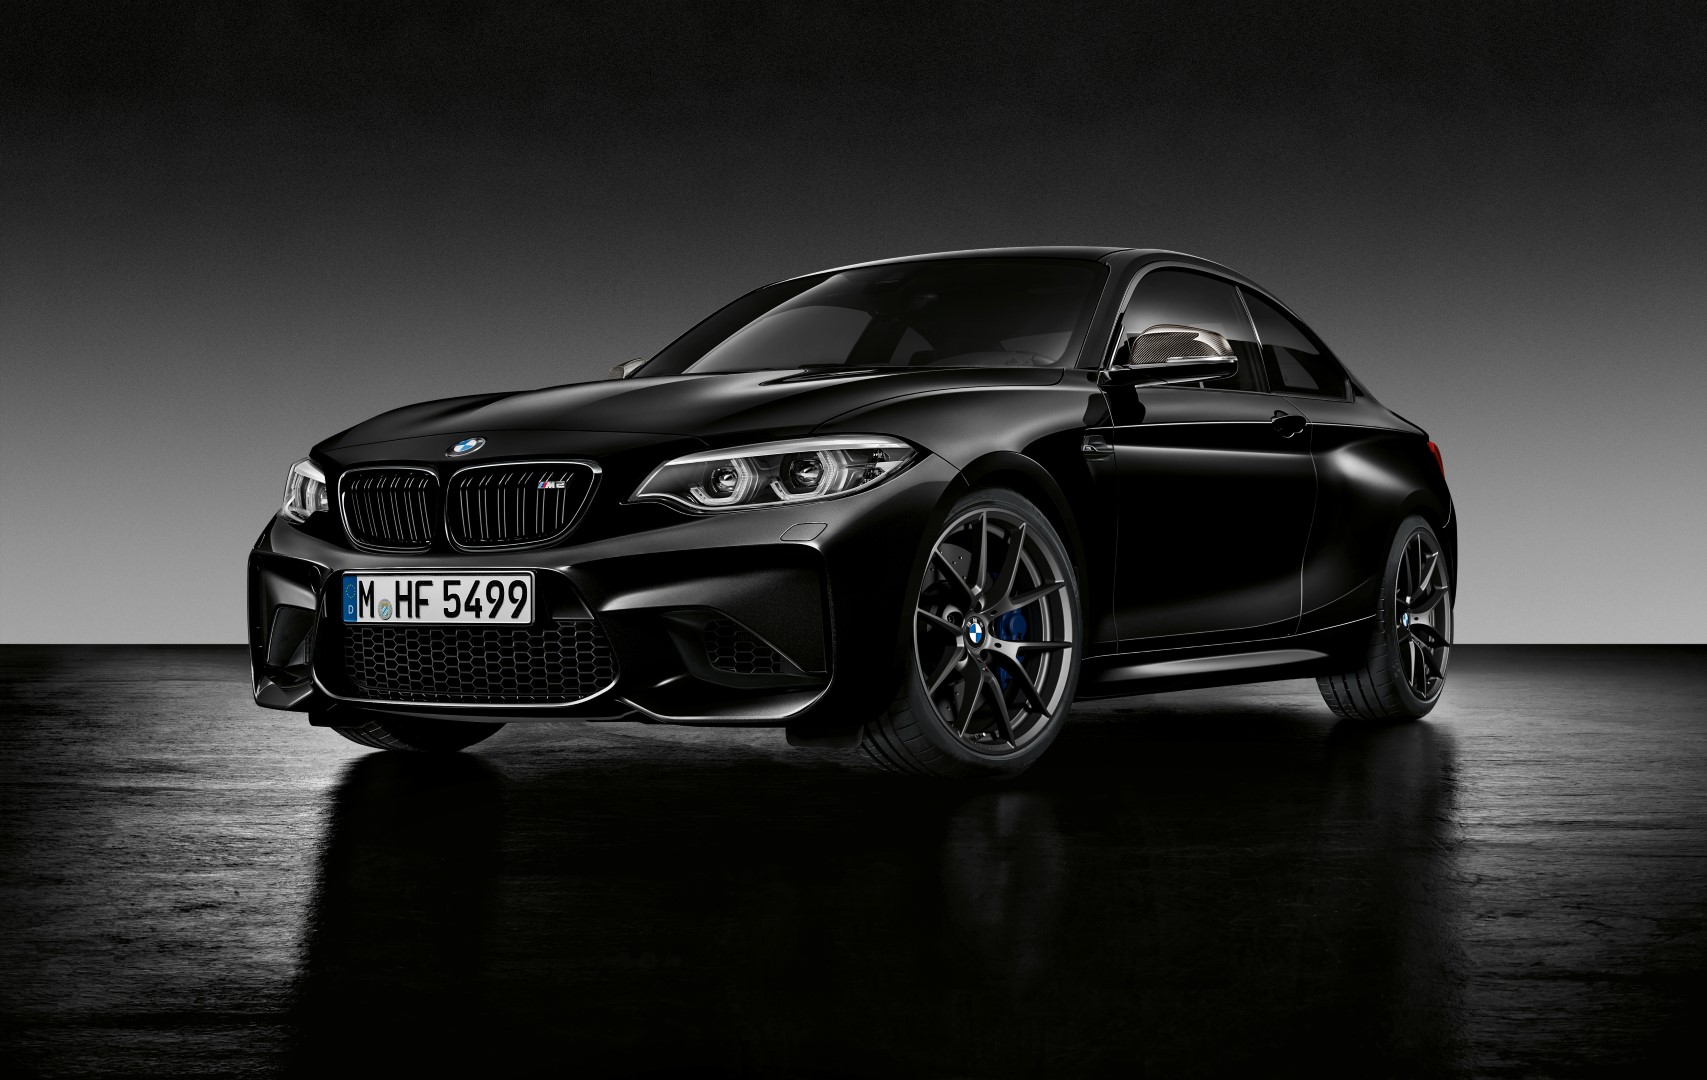 The BMW M2 Was The Most Successful M Model In 2017 Selling More Than 12,000  Units Worldwide And Now Thanks To This Popularity, BMW Are Offering An  Edition ...